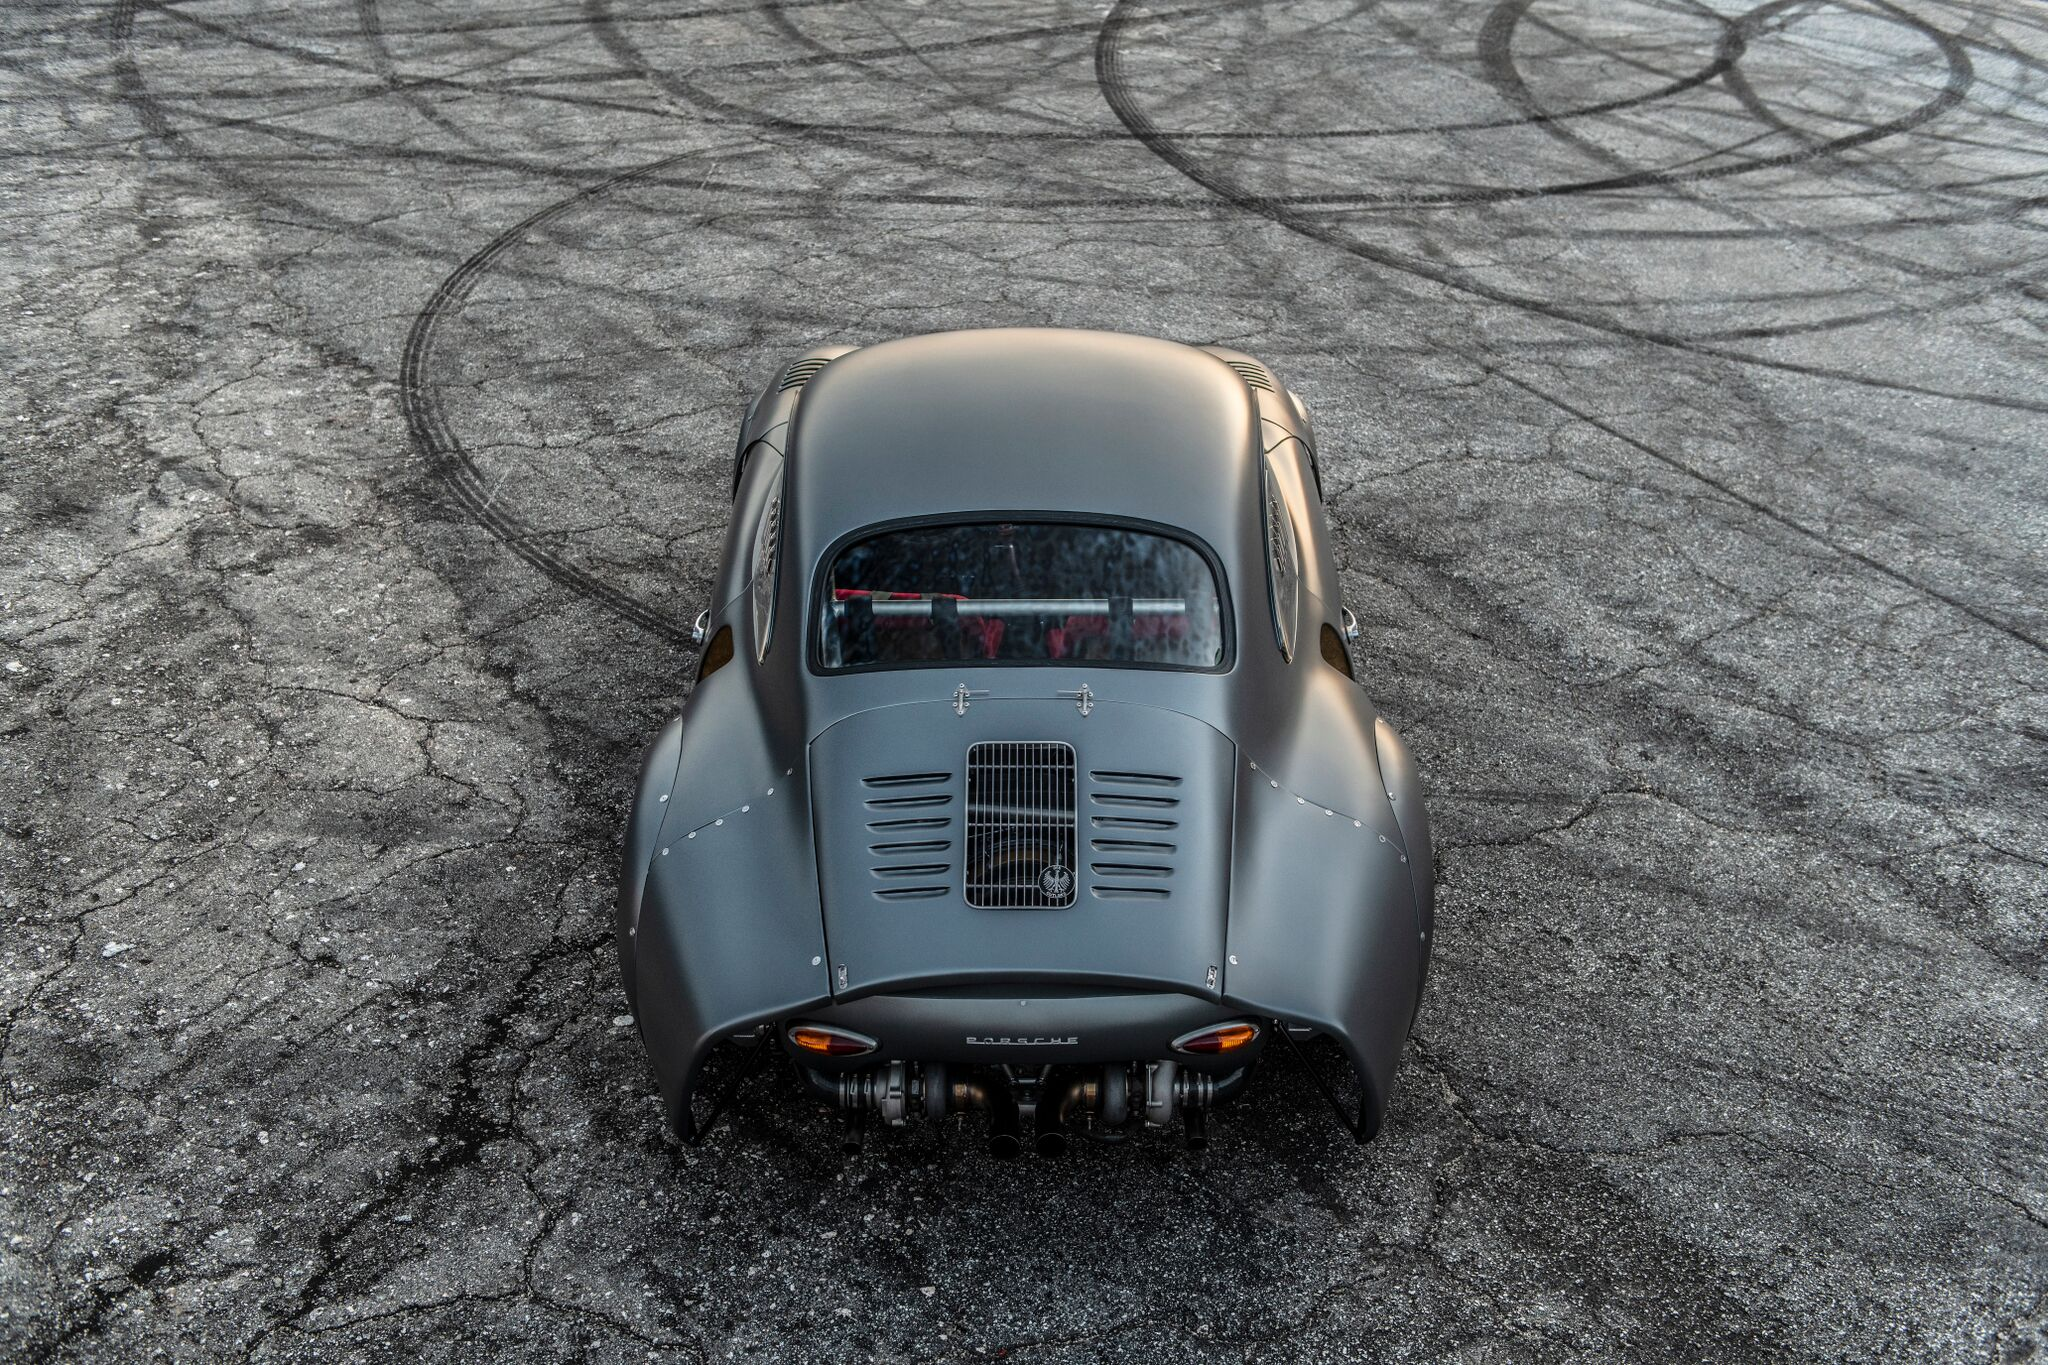 Porsche-356-RSR-Outlaw-by-Momo-and-Emory-motorsports-5